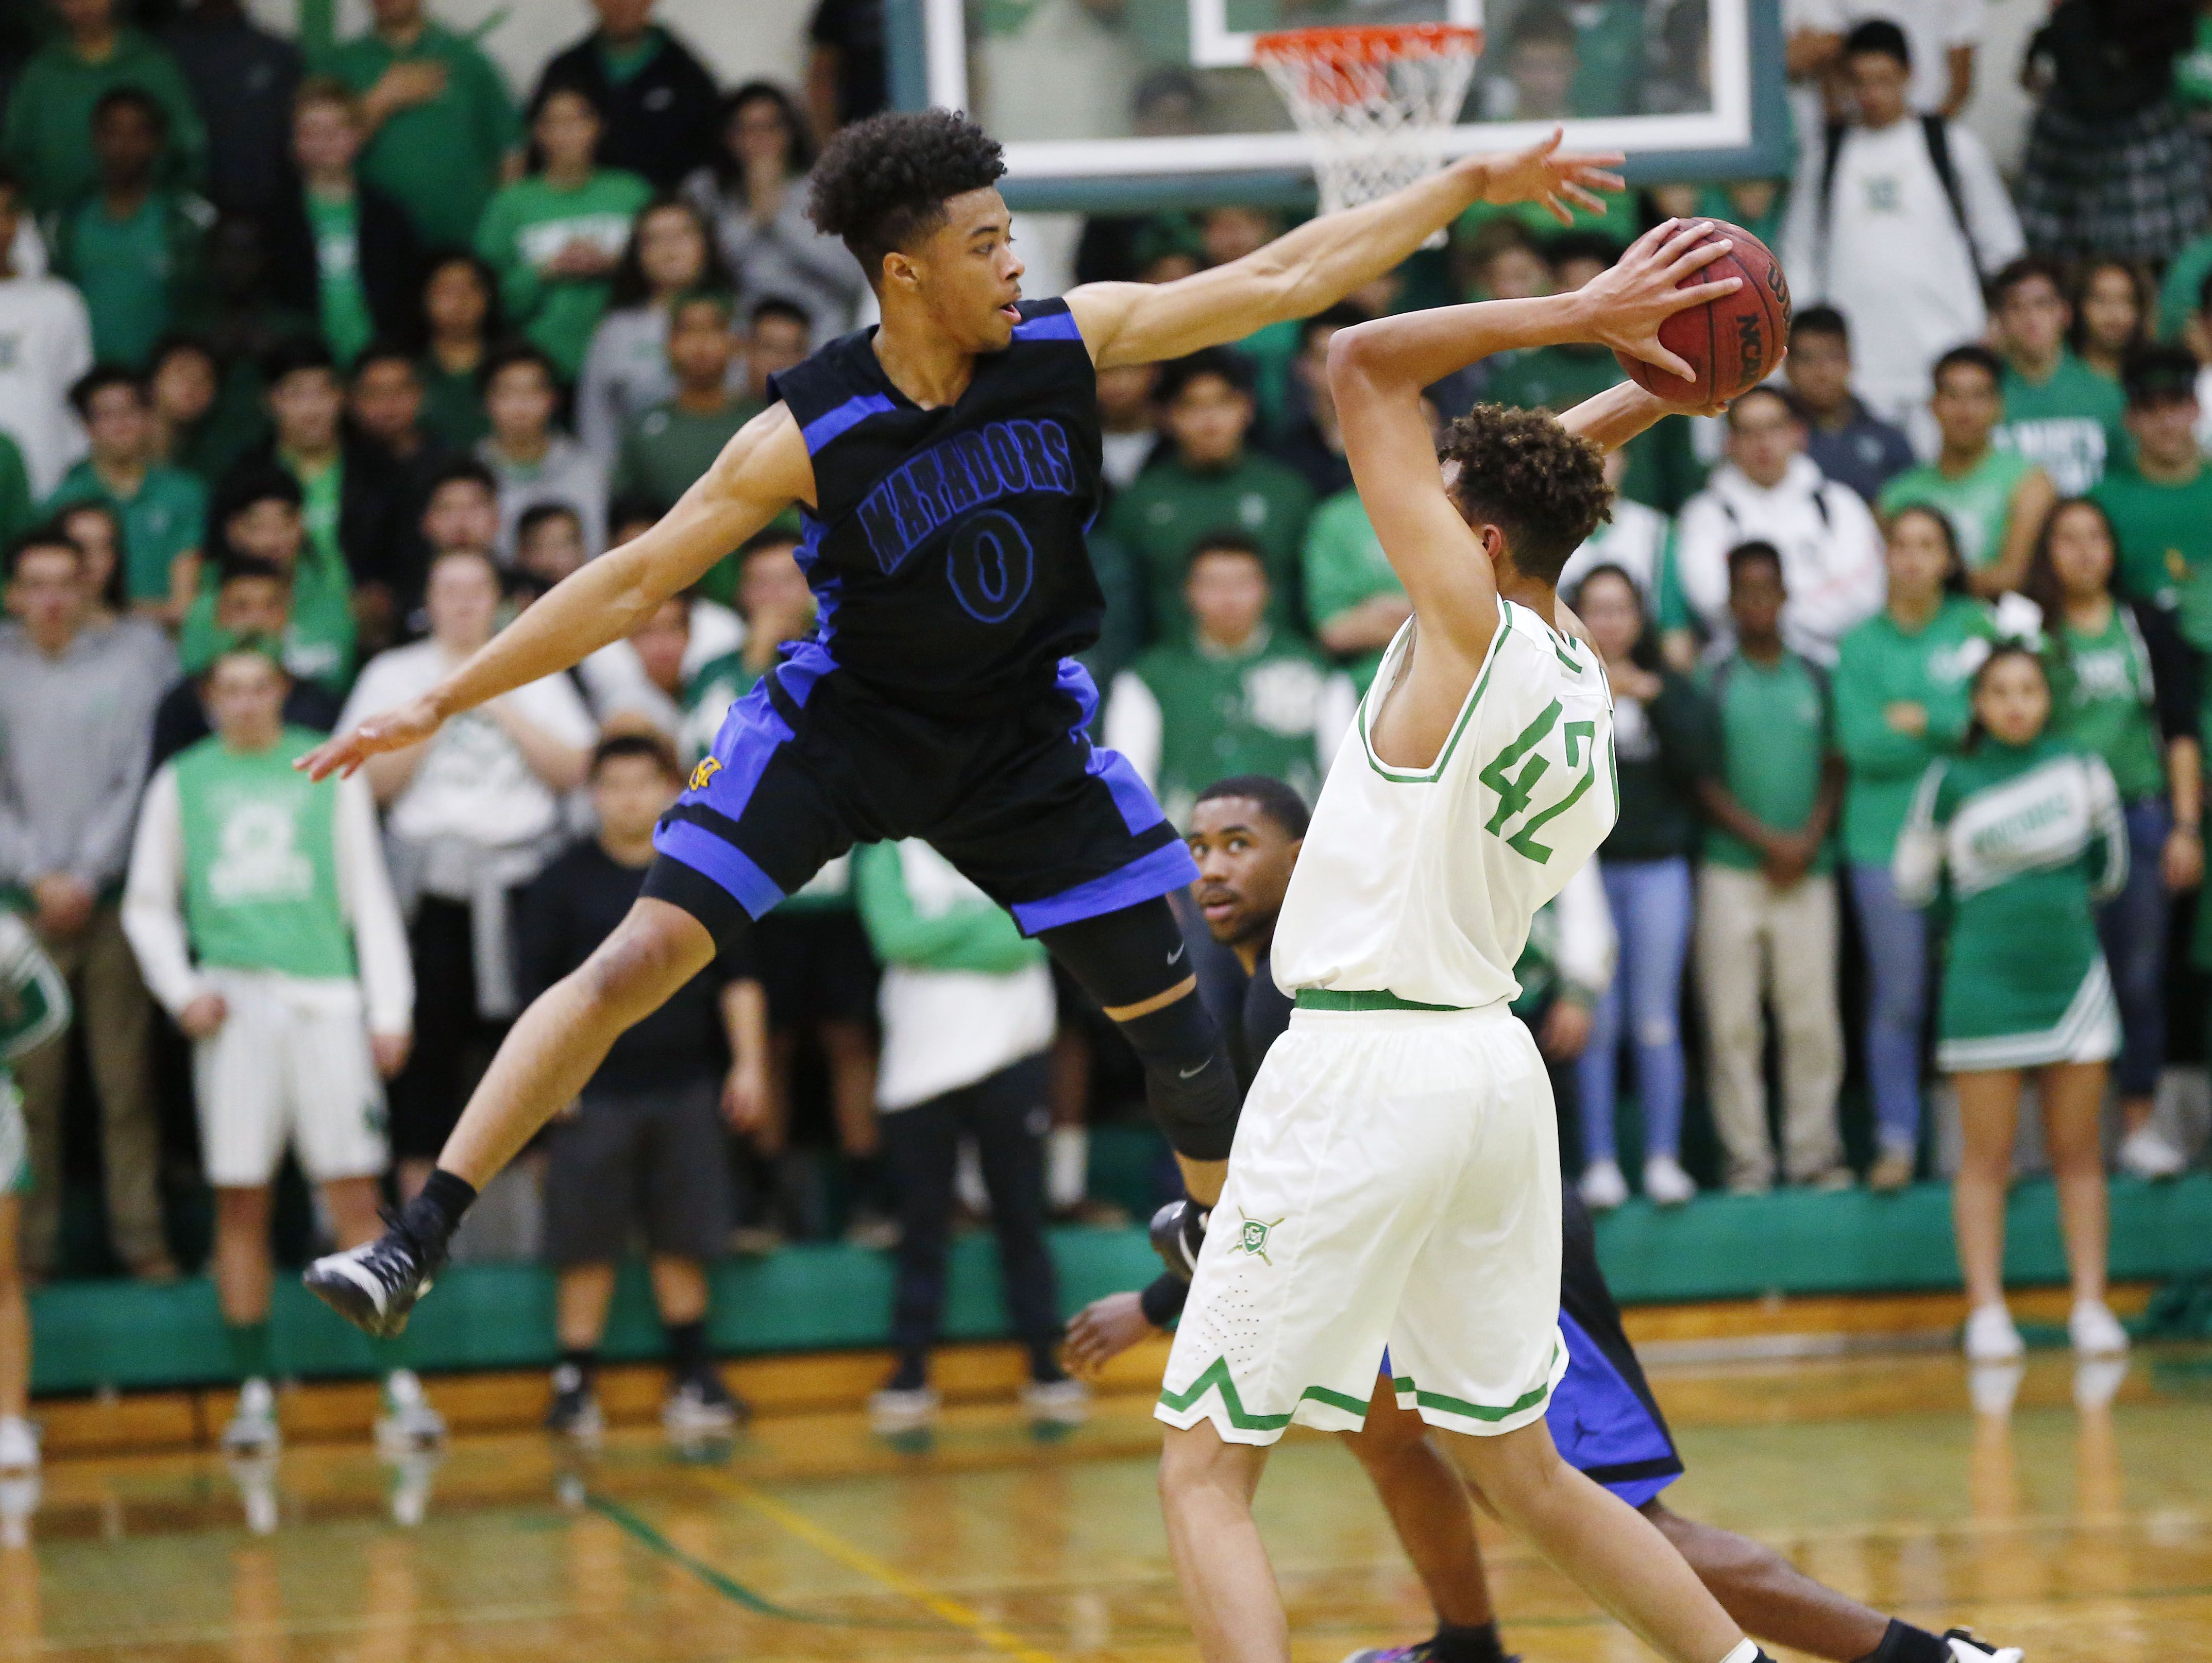 Shadow Mountain guard Marcus Shaver (0) defends against St. Mary's Kj Hymes (42) during the first half at the St. Mary's High School gym in Phoenix, Ariz., Jan. 24, 2017.